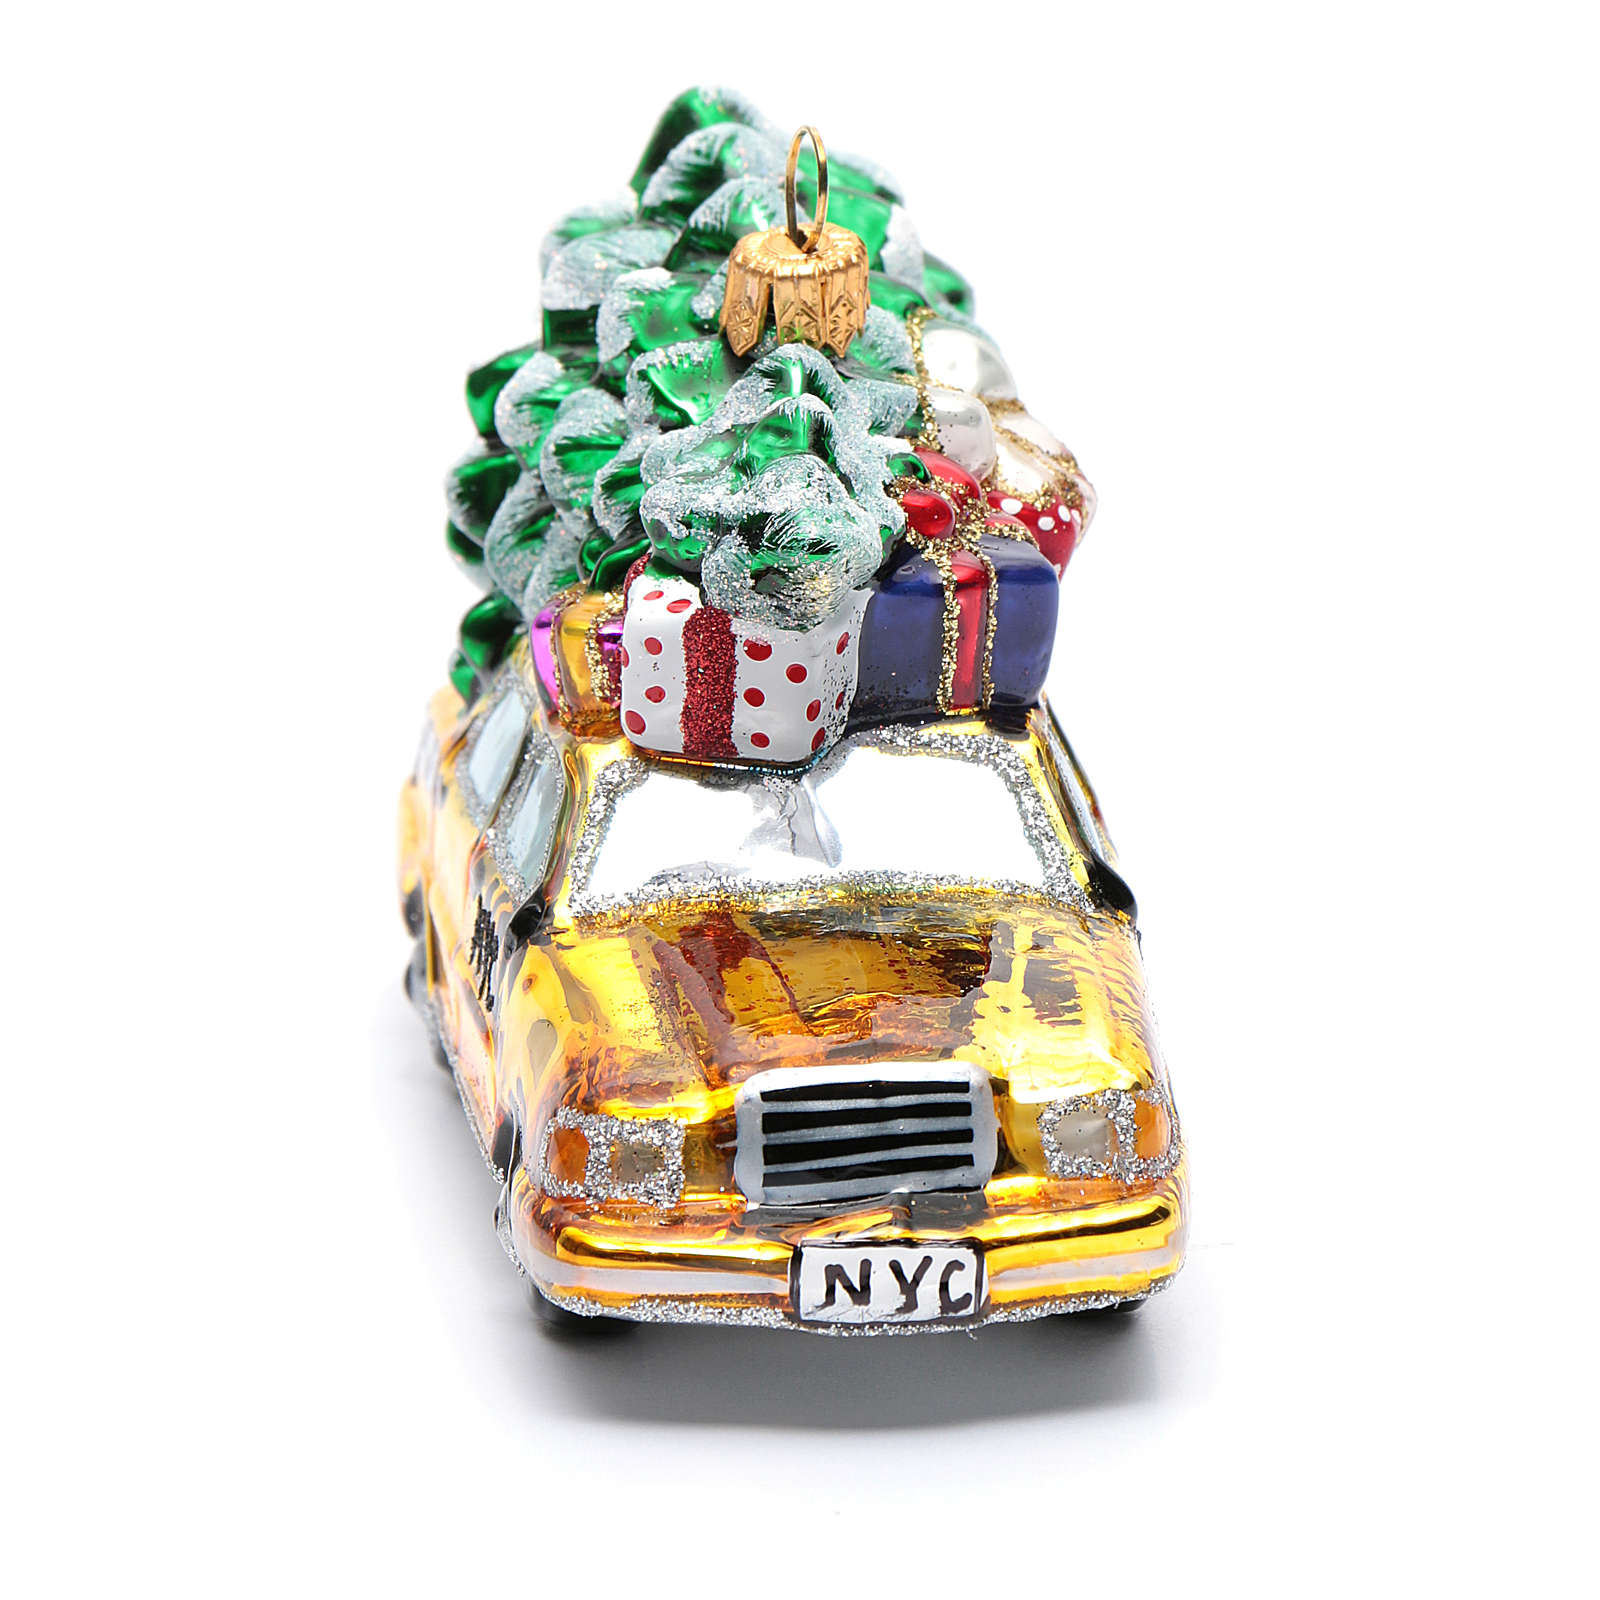 Nyc Christmas Tree Delivery: Blown Glass Christmas Ornament, New York Taxi With